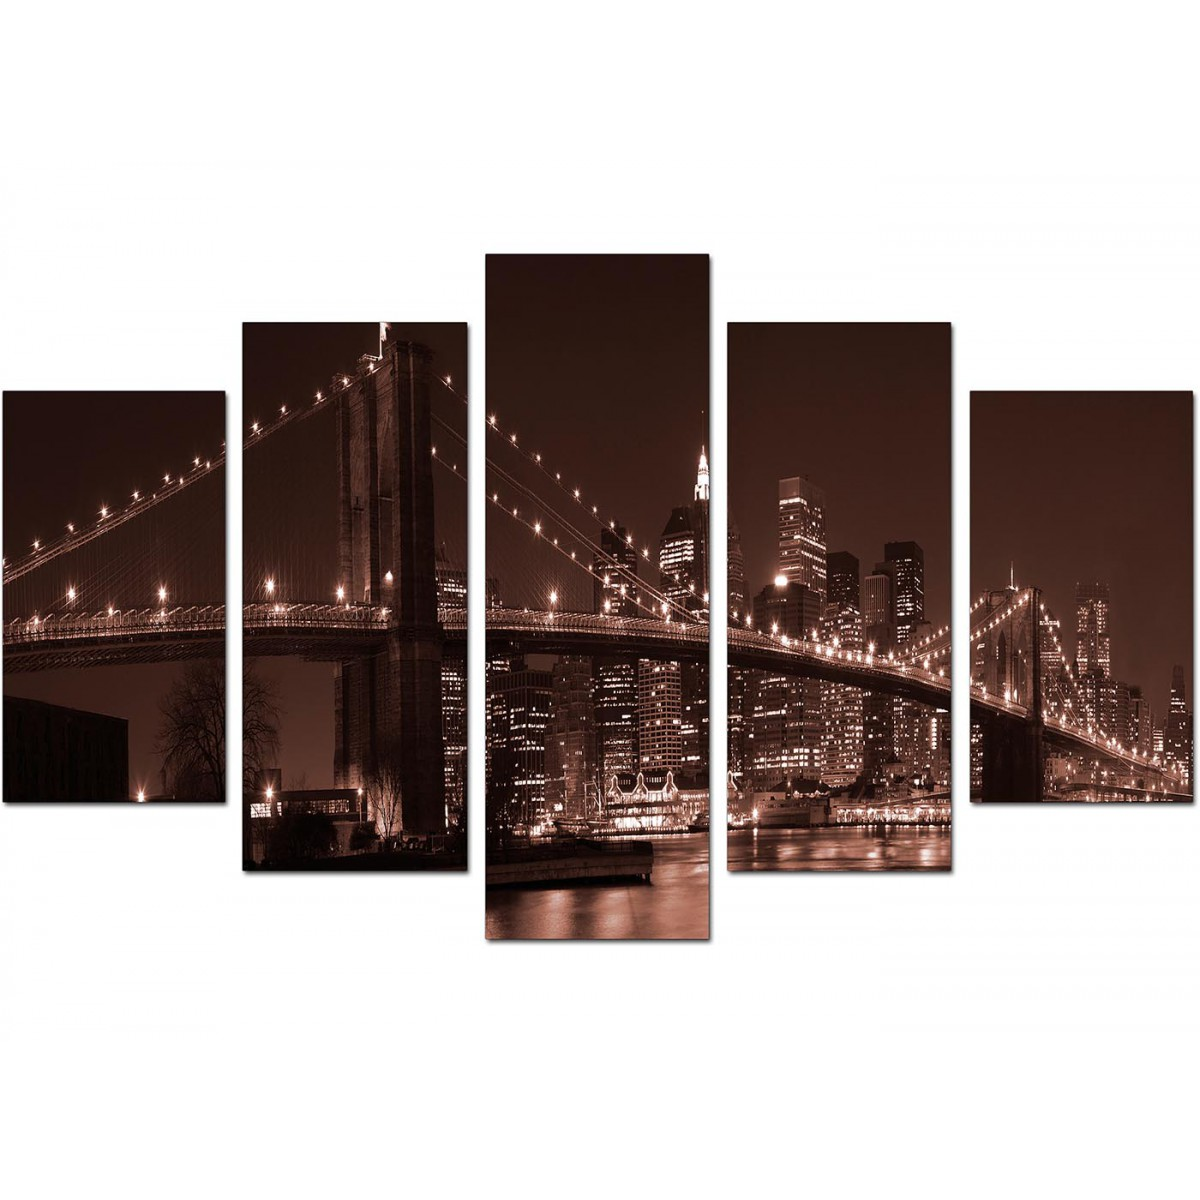 Extra Large New York Canvas Prints 5 Piece in Brown : brown canvas wall art new york brooklyn manhattan extra large set of five 51221 from www.wallfillers.co.uk size 1200 x 1200 jpeg 173kB